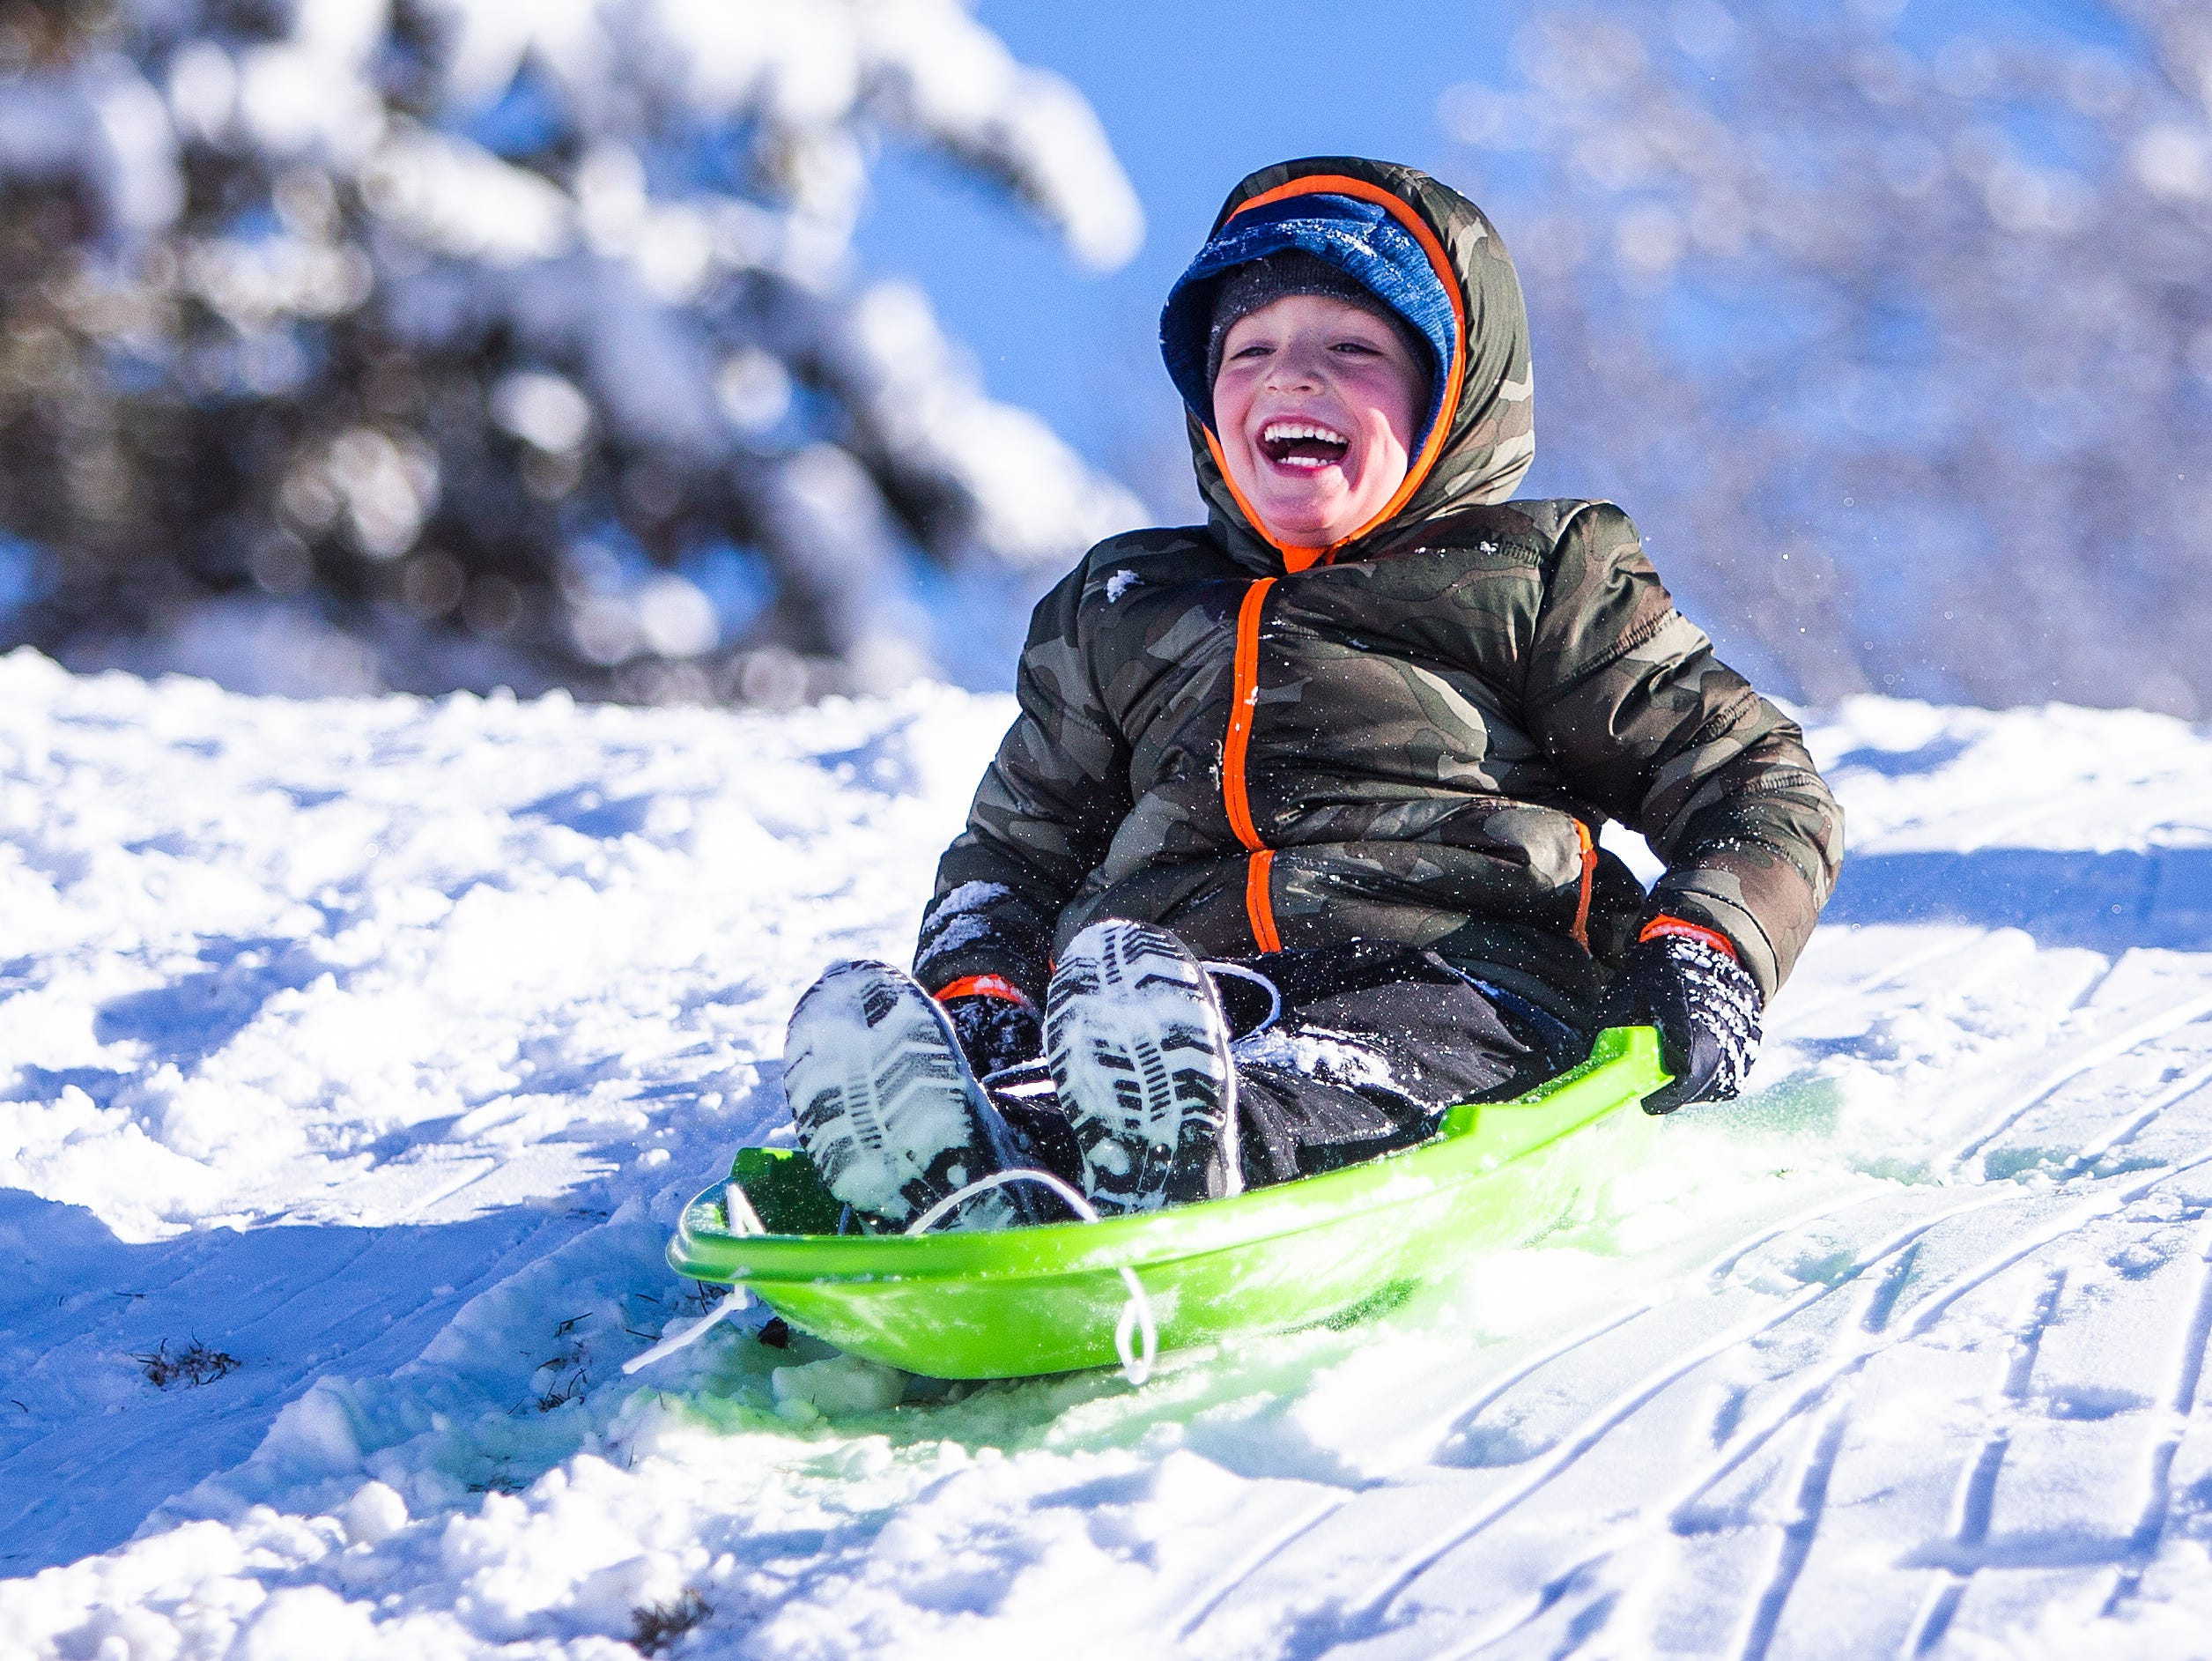 Sawyer Fagerud, 5, Payson, squeals with delight as he slides down a hill in fresh snowfall at Green Valley Park in Payson on New Year's Day, 2019.